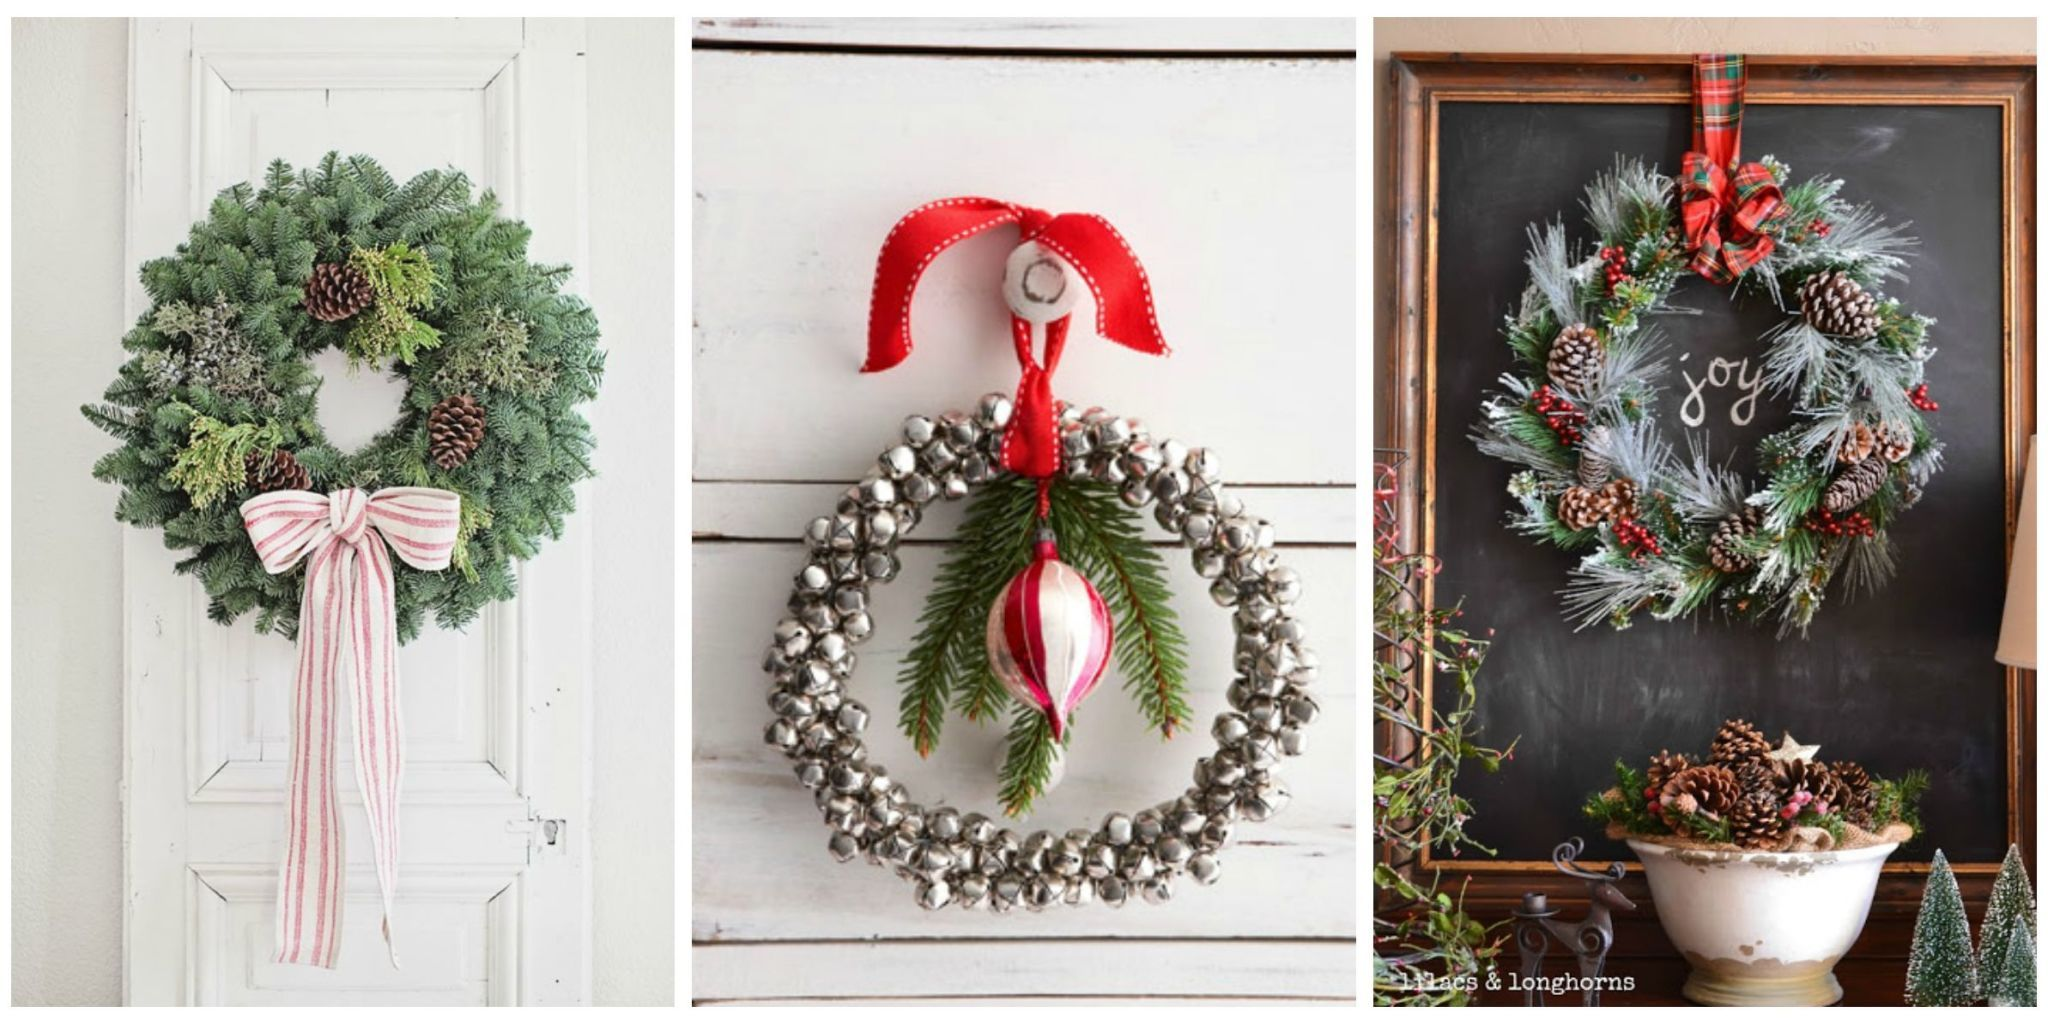 Delicieux Diy Holiday Wreaths